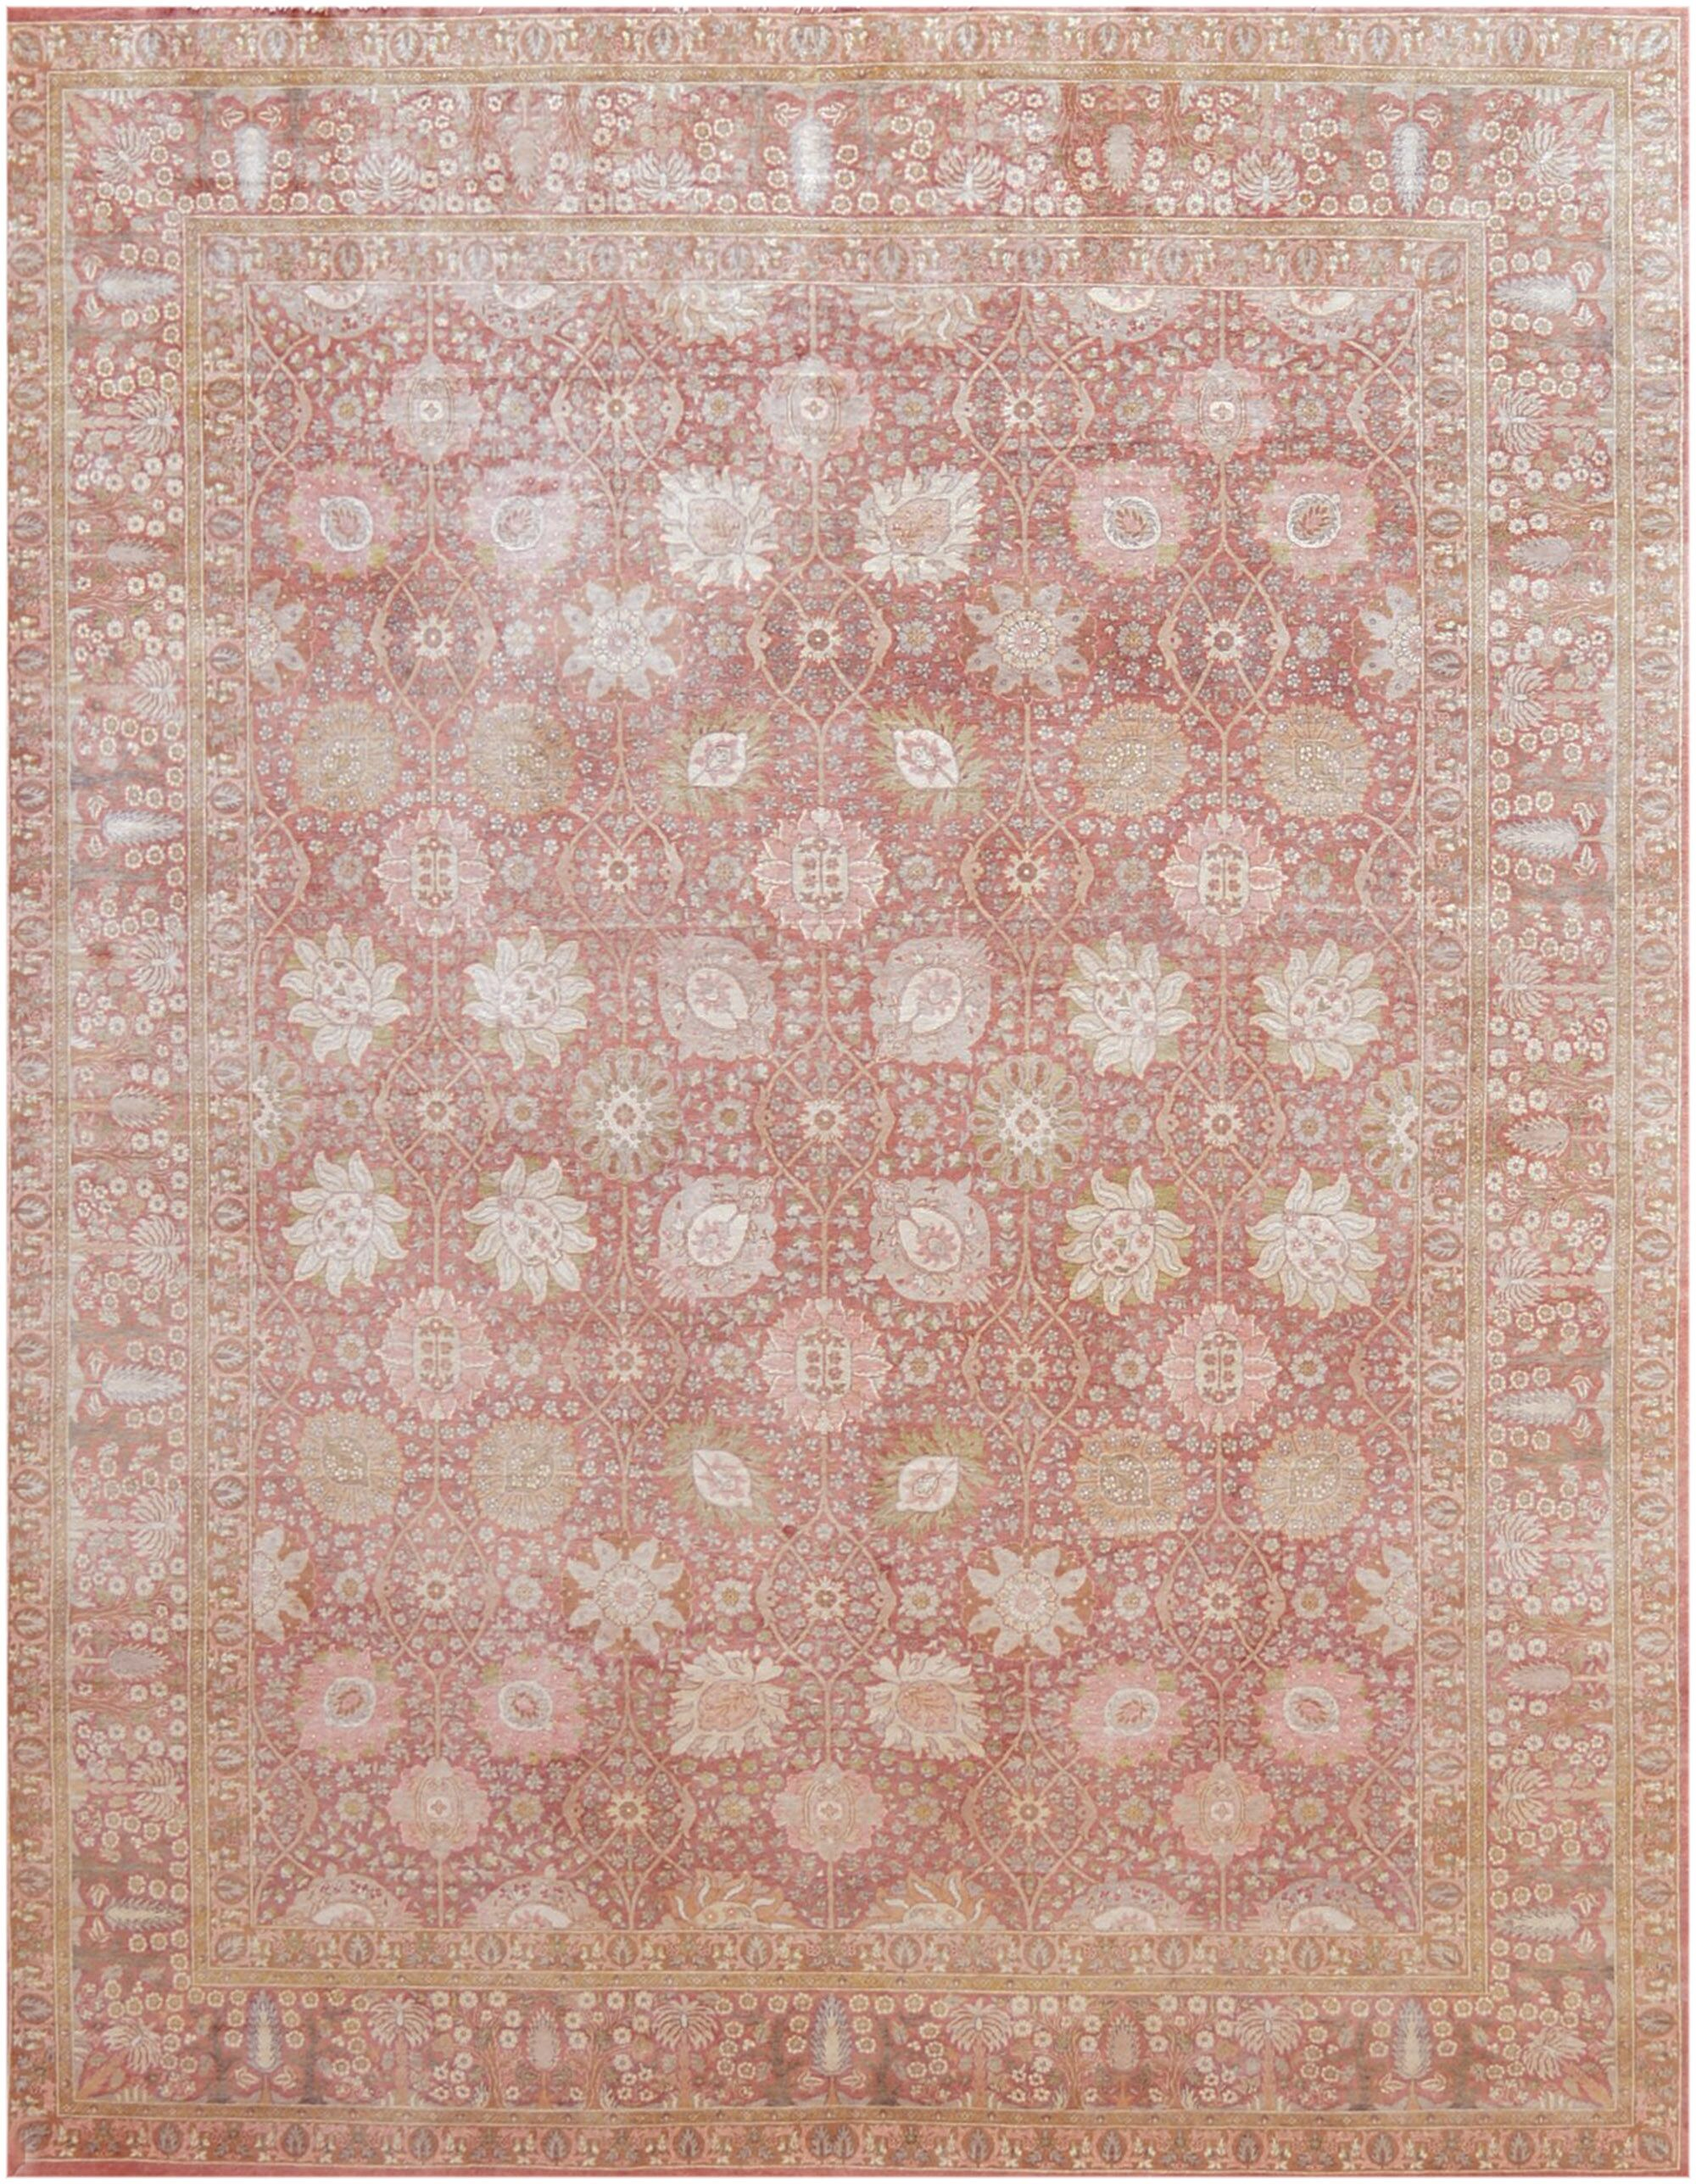 One-of-a-Kind Quality Handwoven Wool Terra Cotta Indoor Area Rug